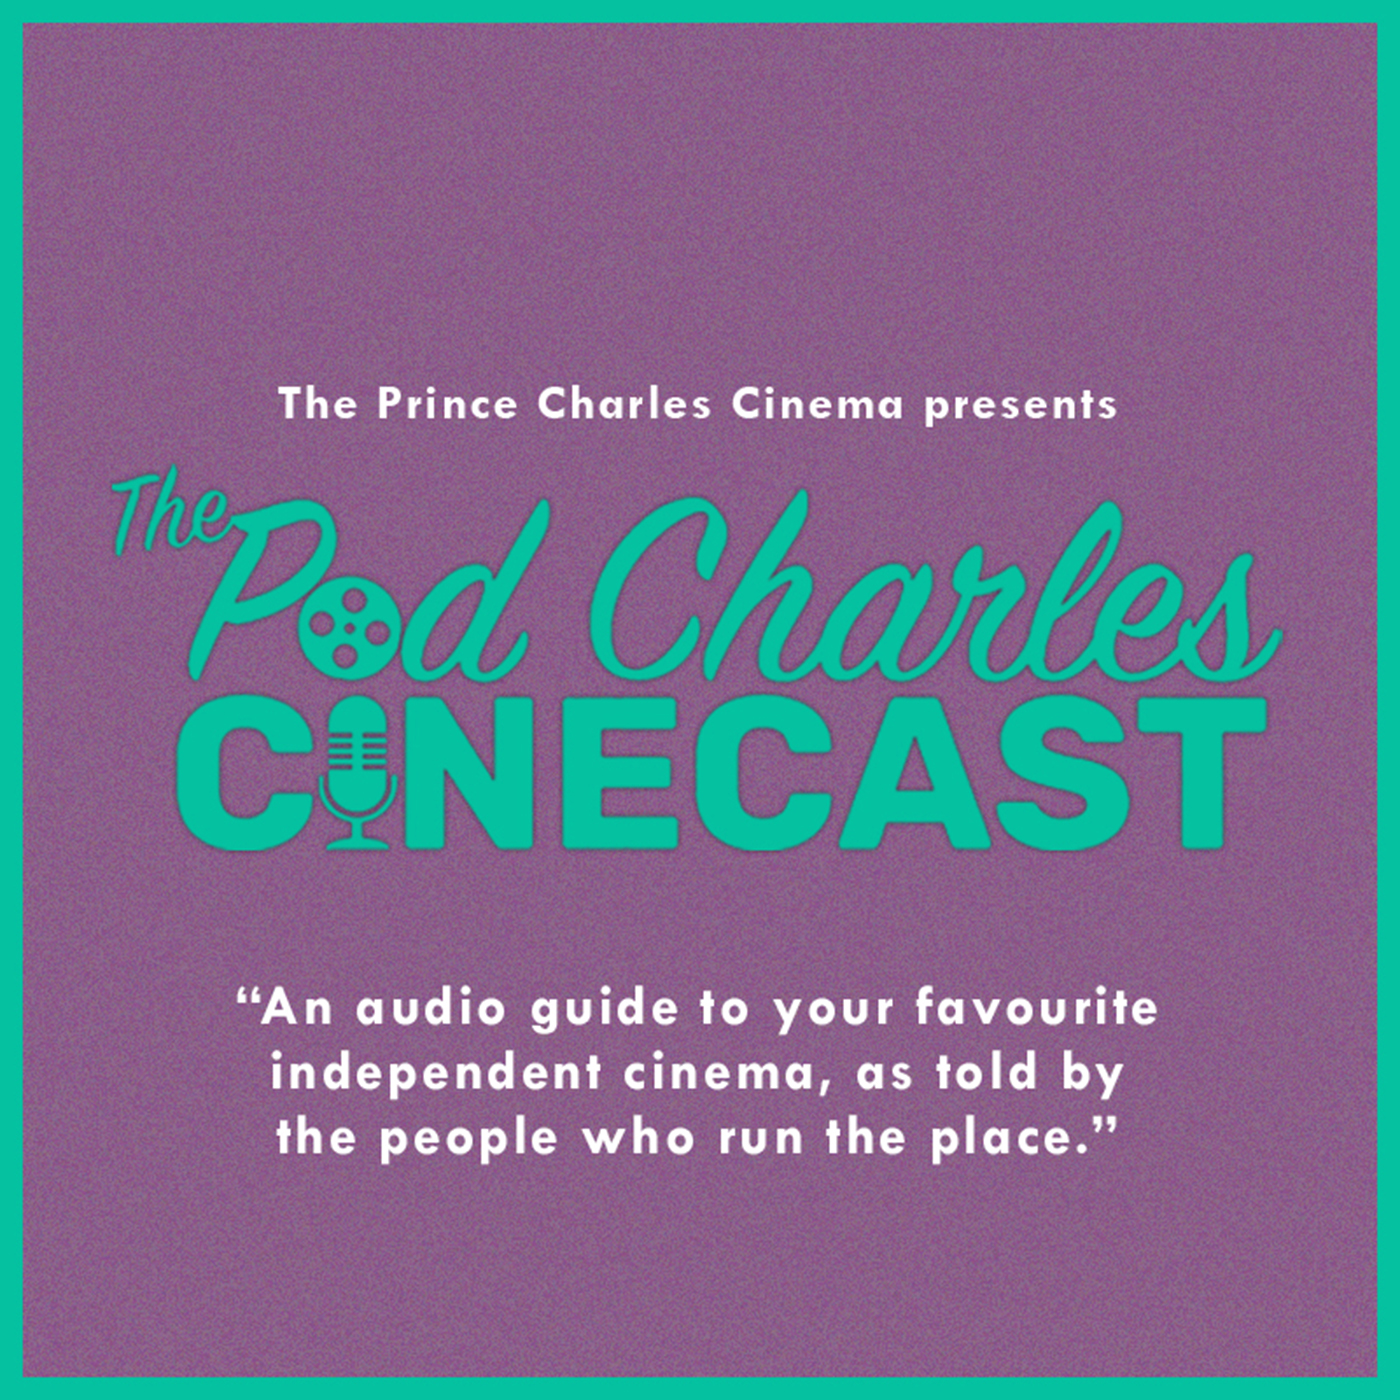 Show artwork for The Pod Charles Cinecast